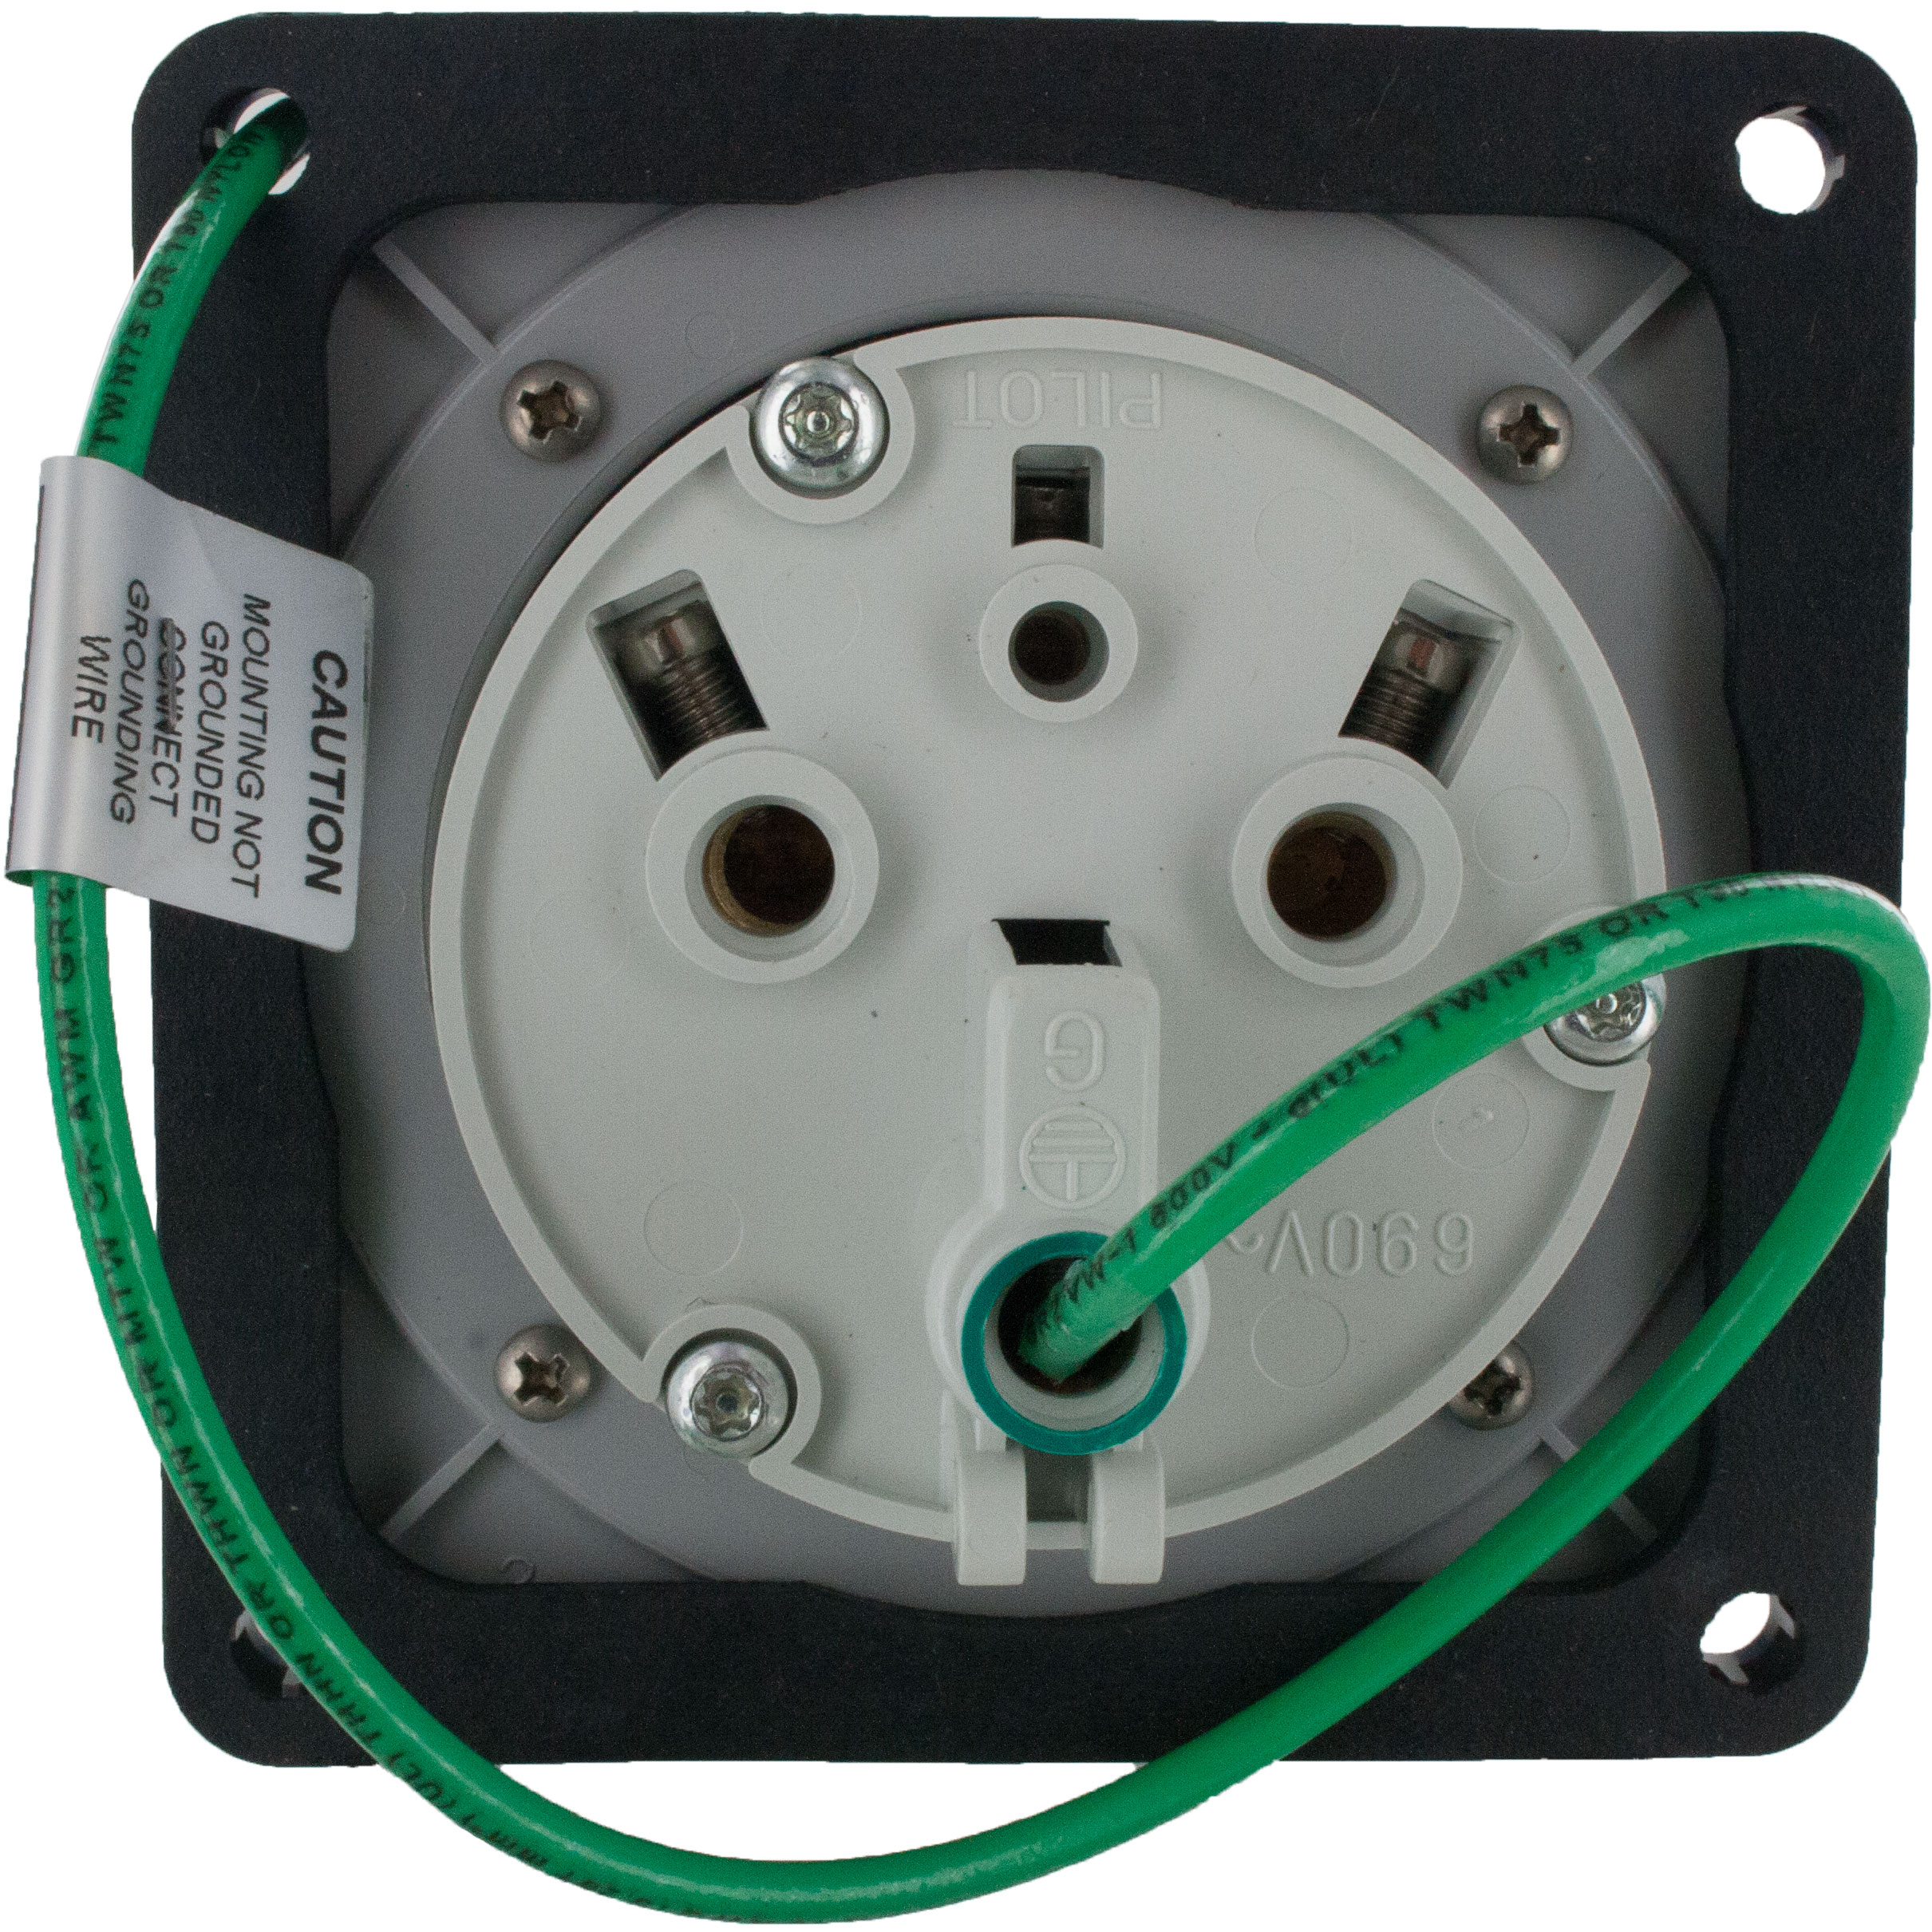 363R6W Pin And Sleeve Receptacle 63 Amp 2 Pole 3 Wire | ElecDirect